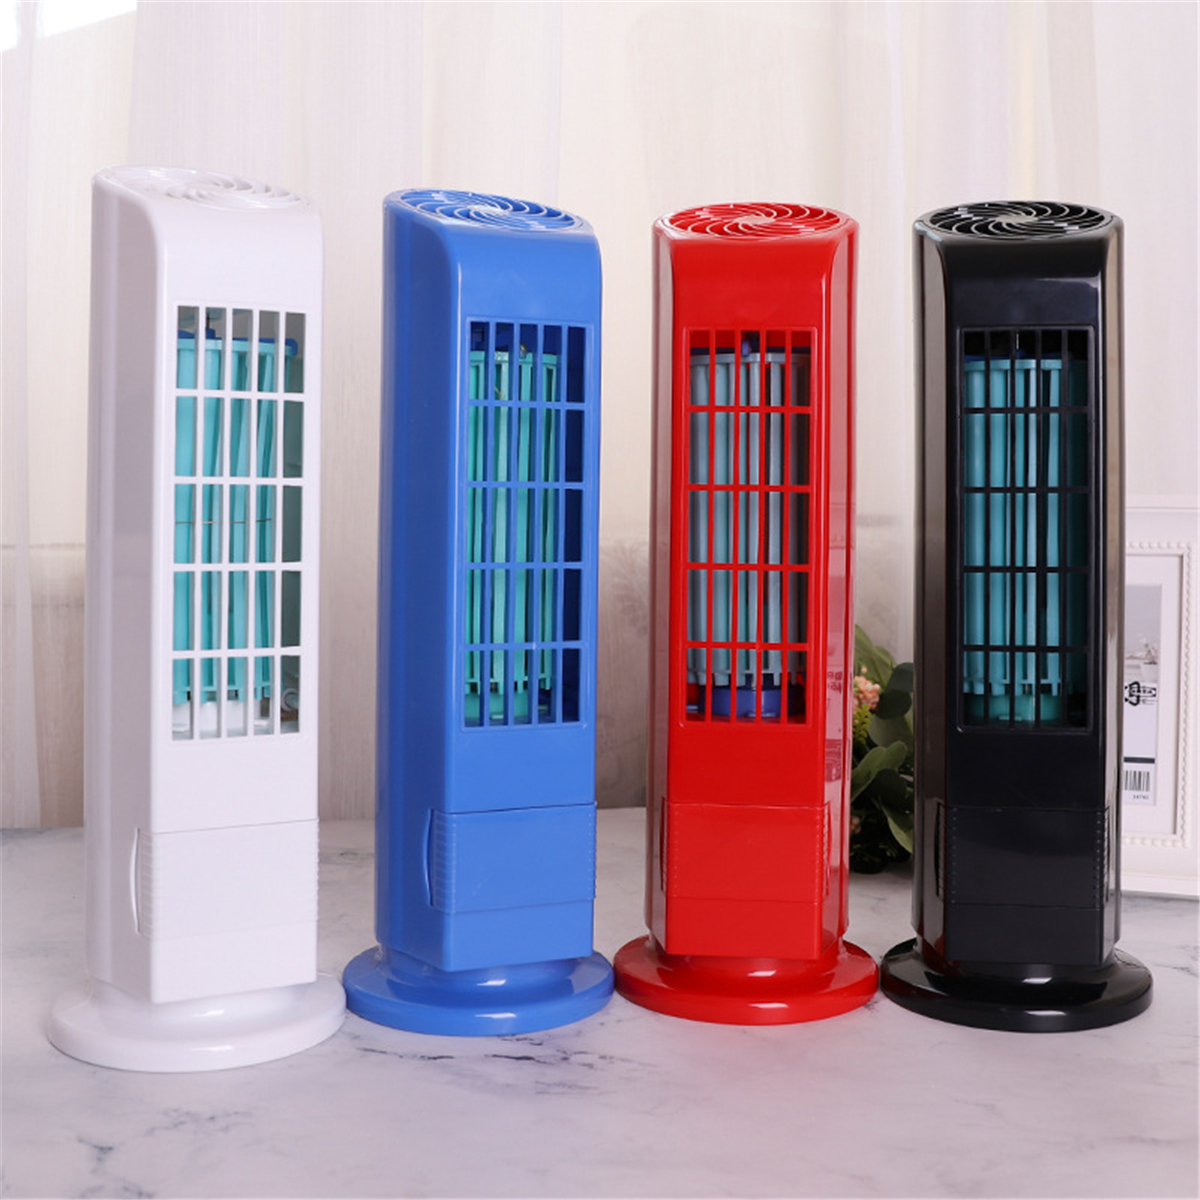 Portable USB Cooling Air Conditioner Purifier Travel HomeTower Bladeless Desk USB Fan 4 Colors